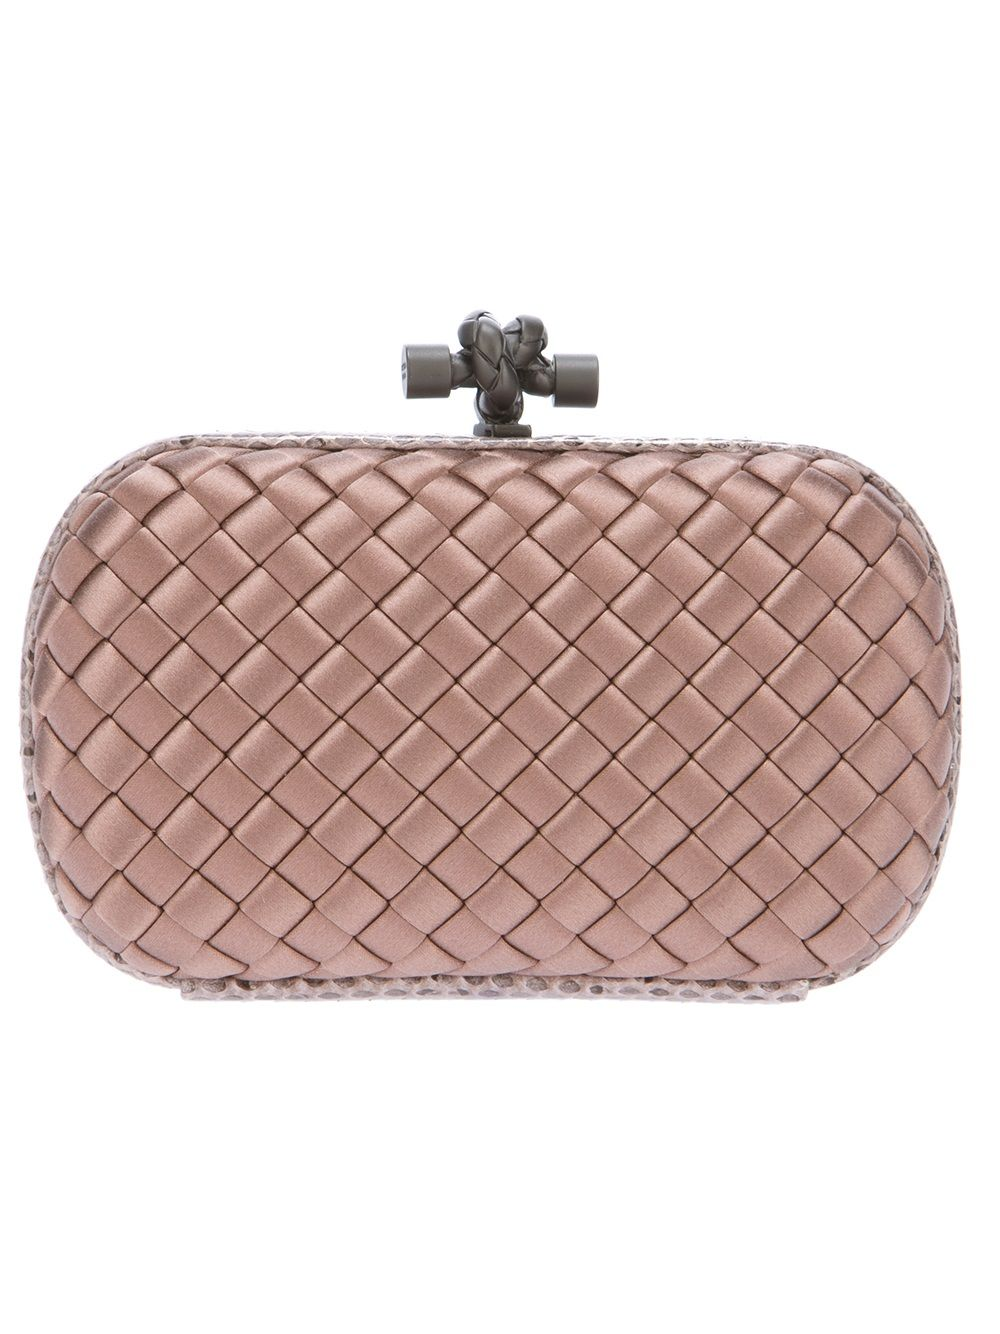 9f508405c0 Woven Box Clutch by Bottega Veneta  GenteRoma